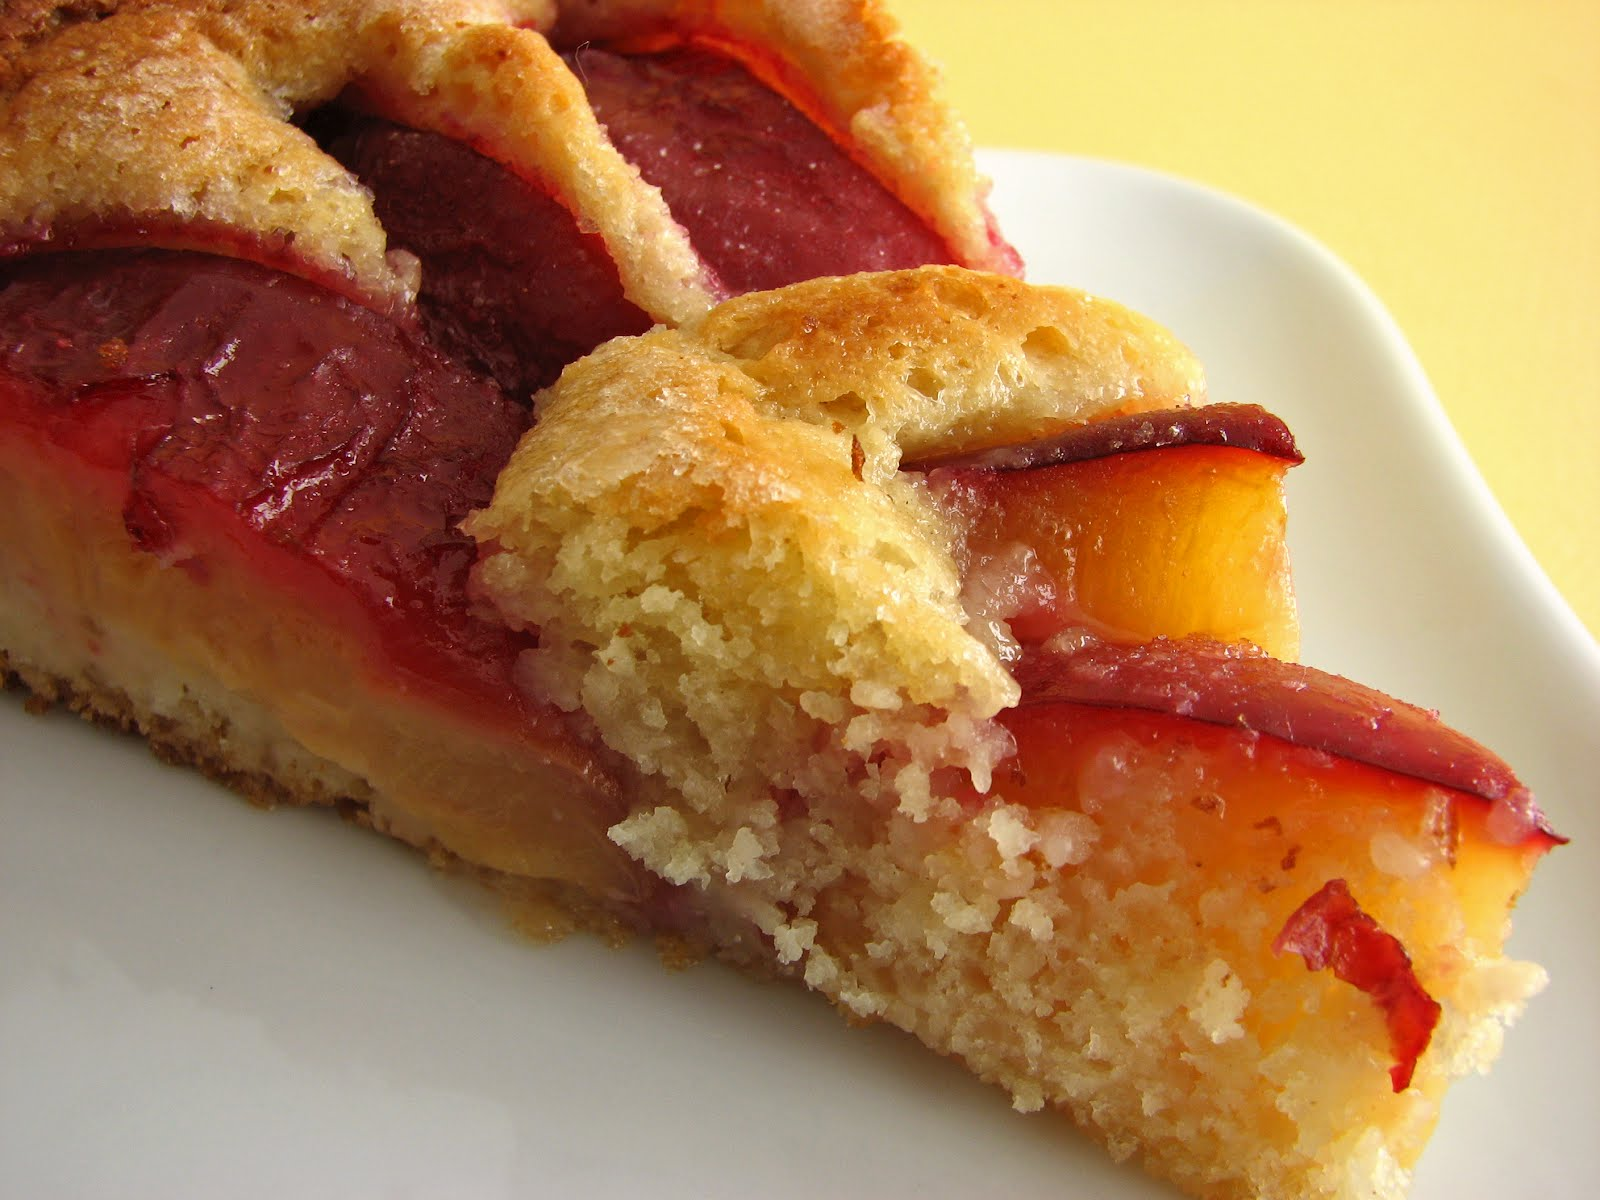 pastry studio: Yeasted Plum Tart